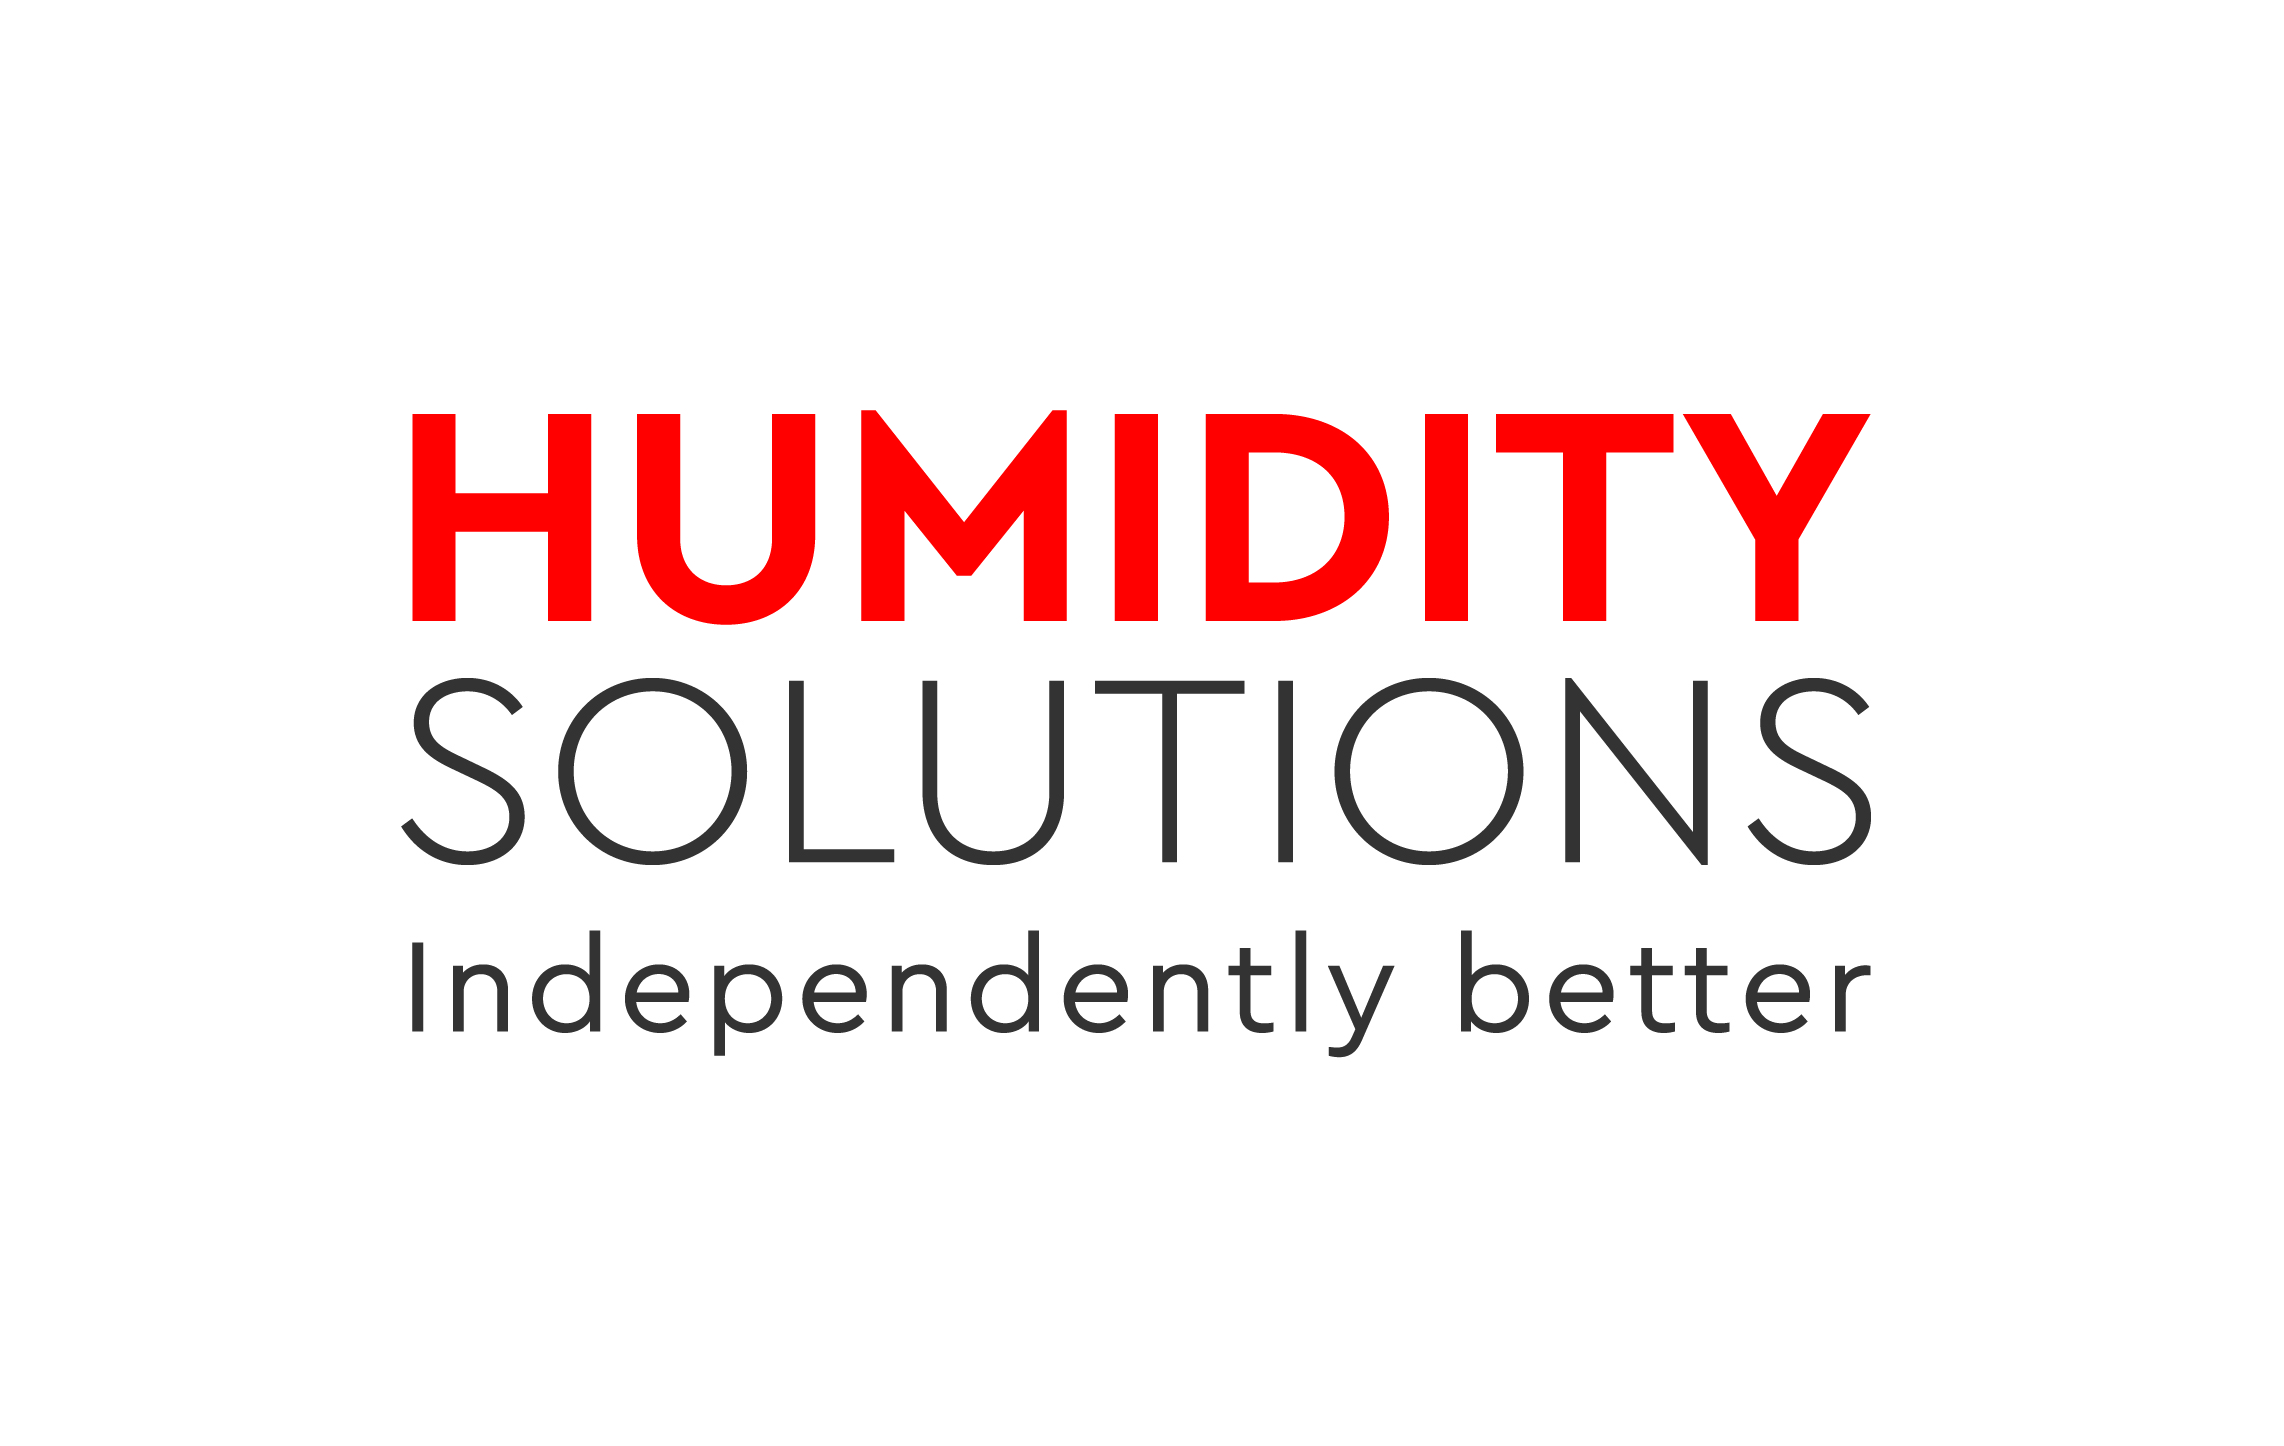 Humidity Solutions Ltd